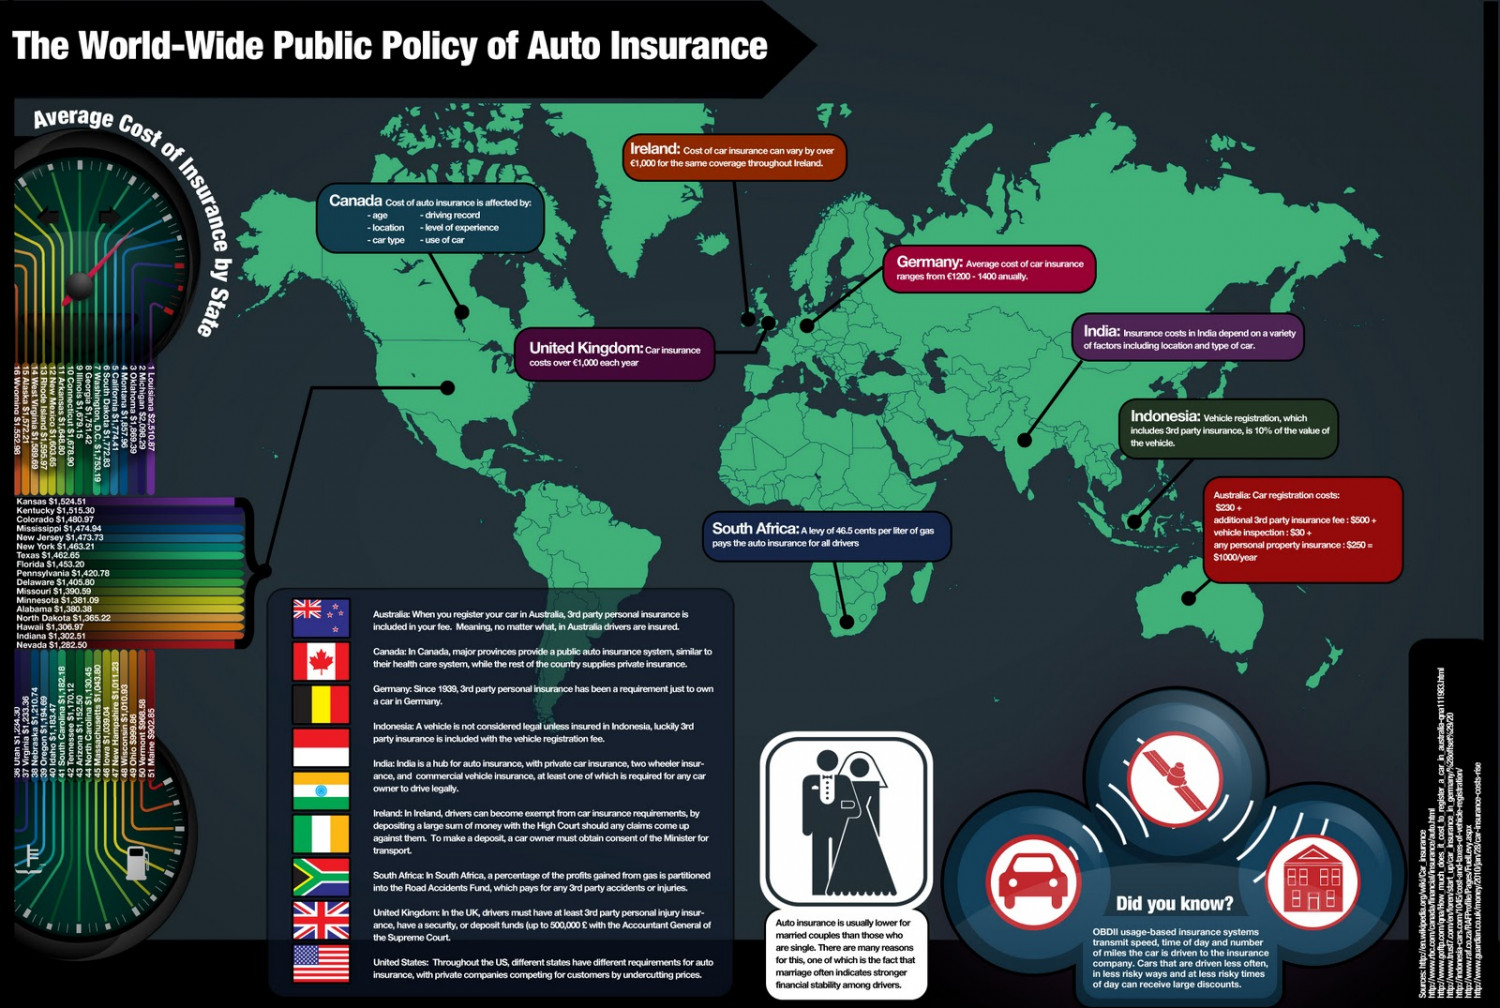 The World Wide Public Policy of Auto Insurance Infographic